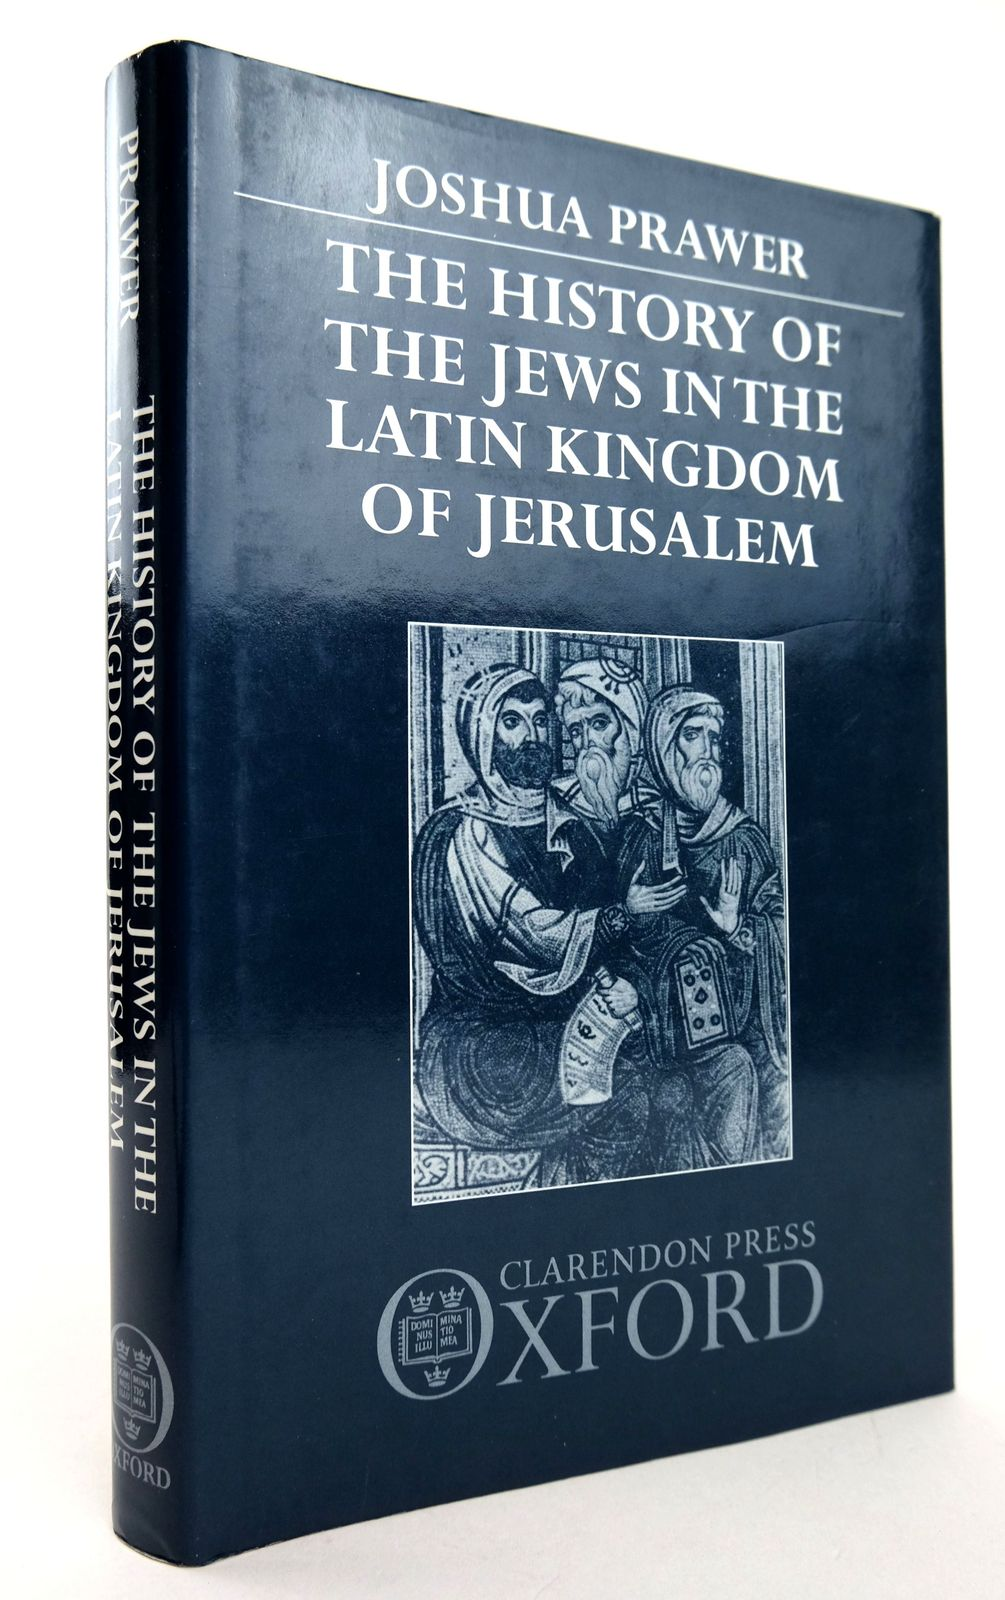 Photo of THE HISTORY OF THE JEWS IN THE LATIN KINGDOM OF JERUSALEM written by Prawer, Joshua published by Clarendon Press (STOCK CODE: 1818866)  for sale by Stella & Rose's Books